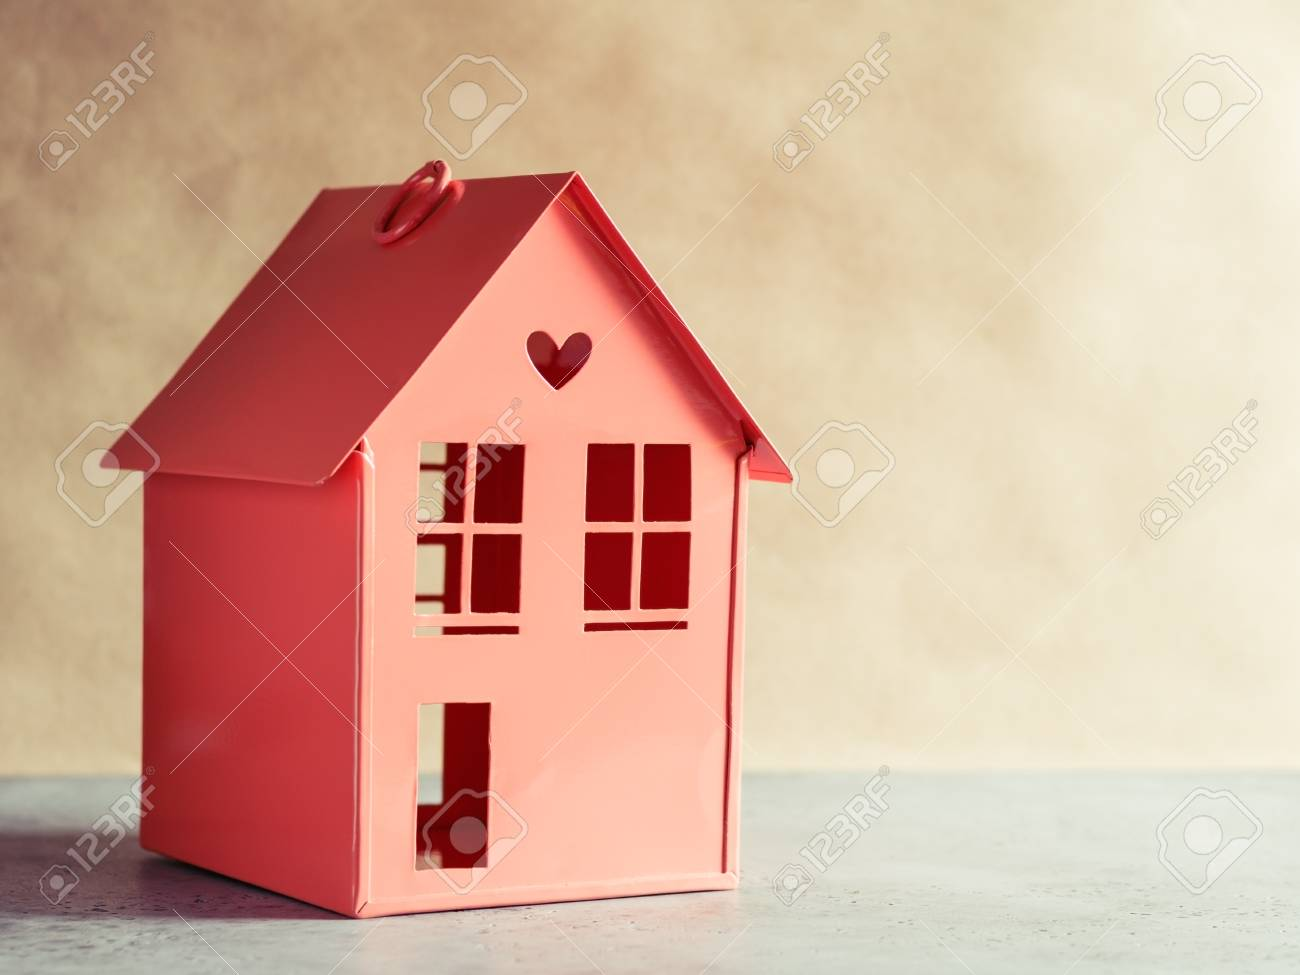 Metal Red Model Of A House With Heart The Concept Home And Domestic